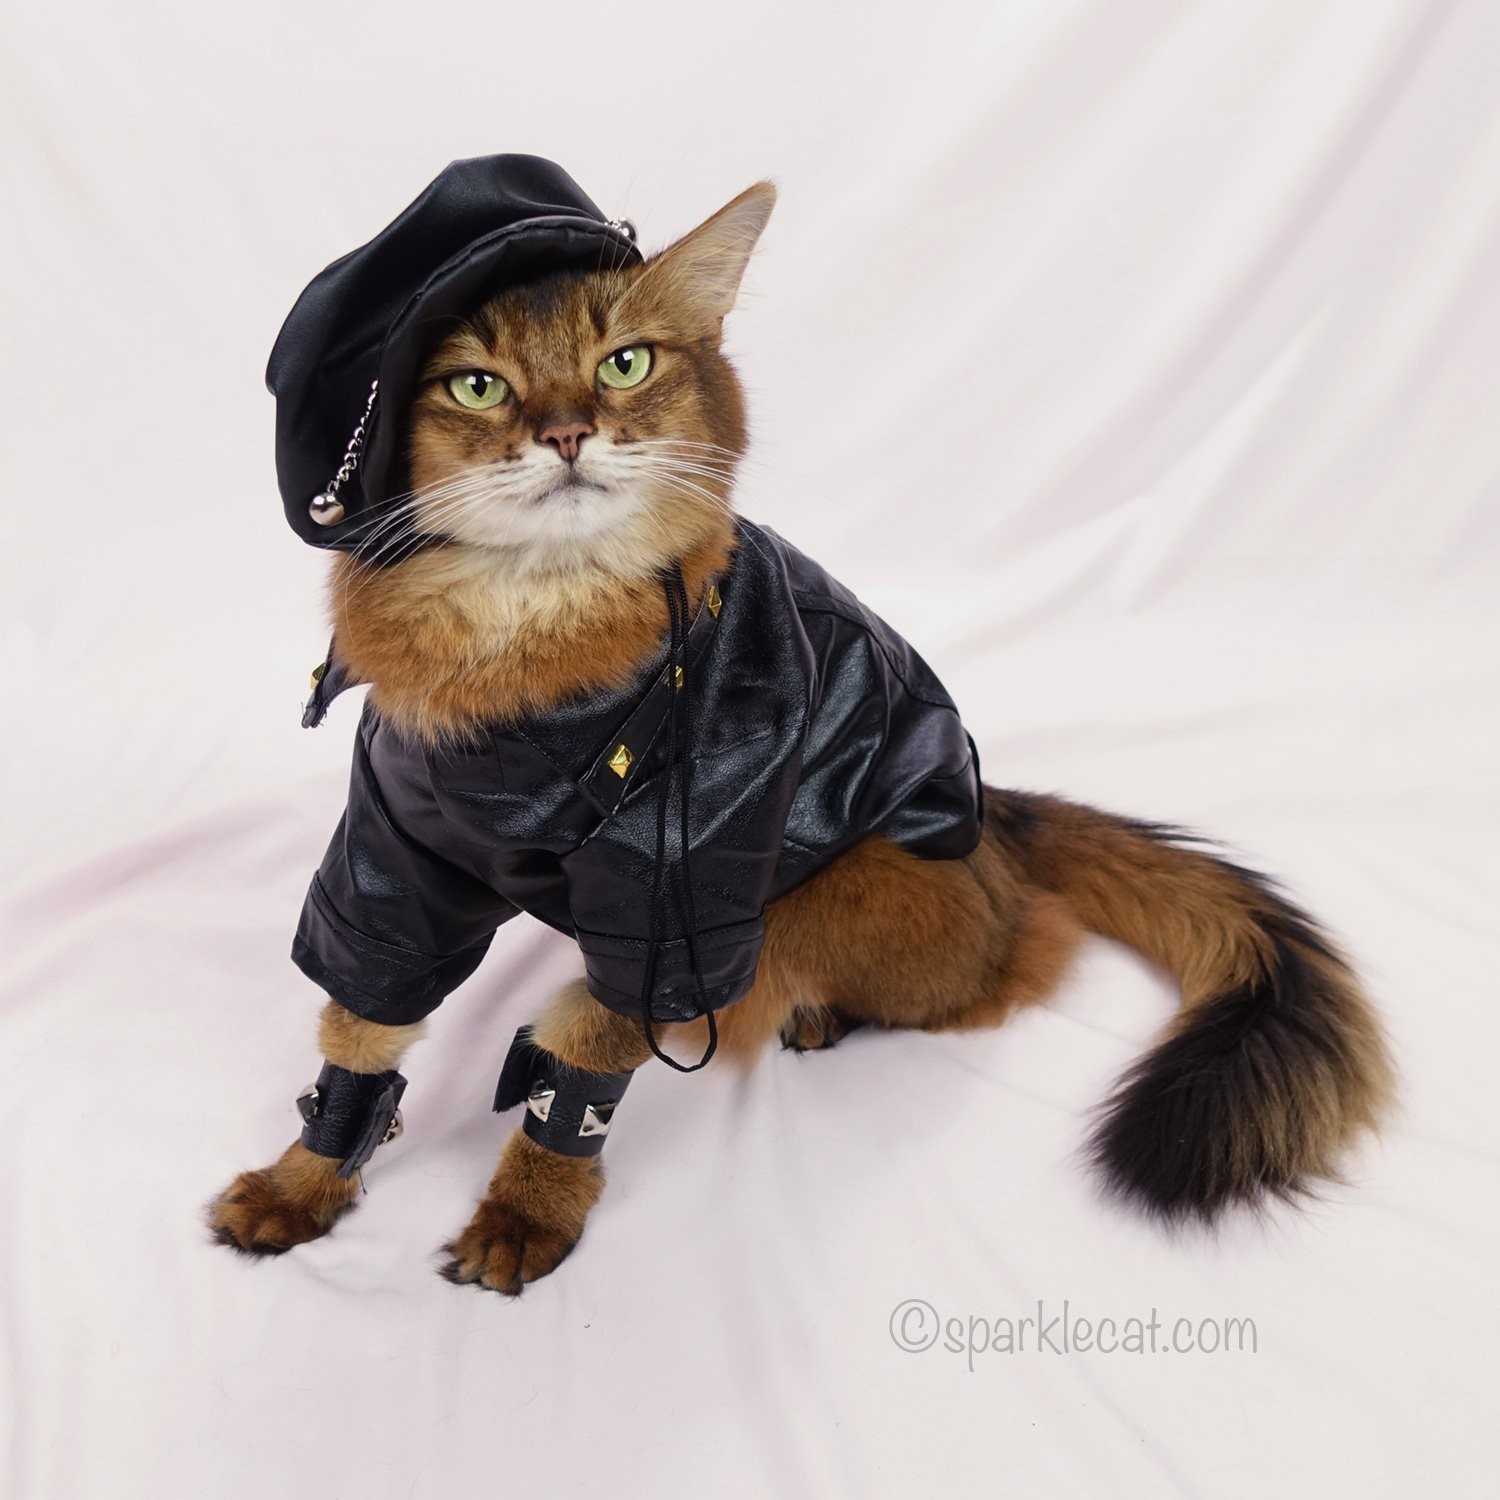 Somali cat posing in her black biker jacket, cuffs, and motorcycle hat